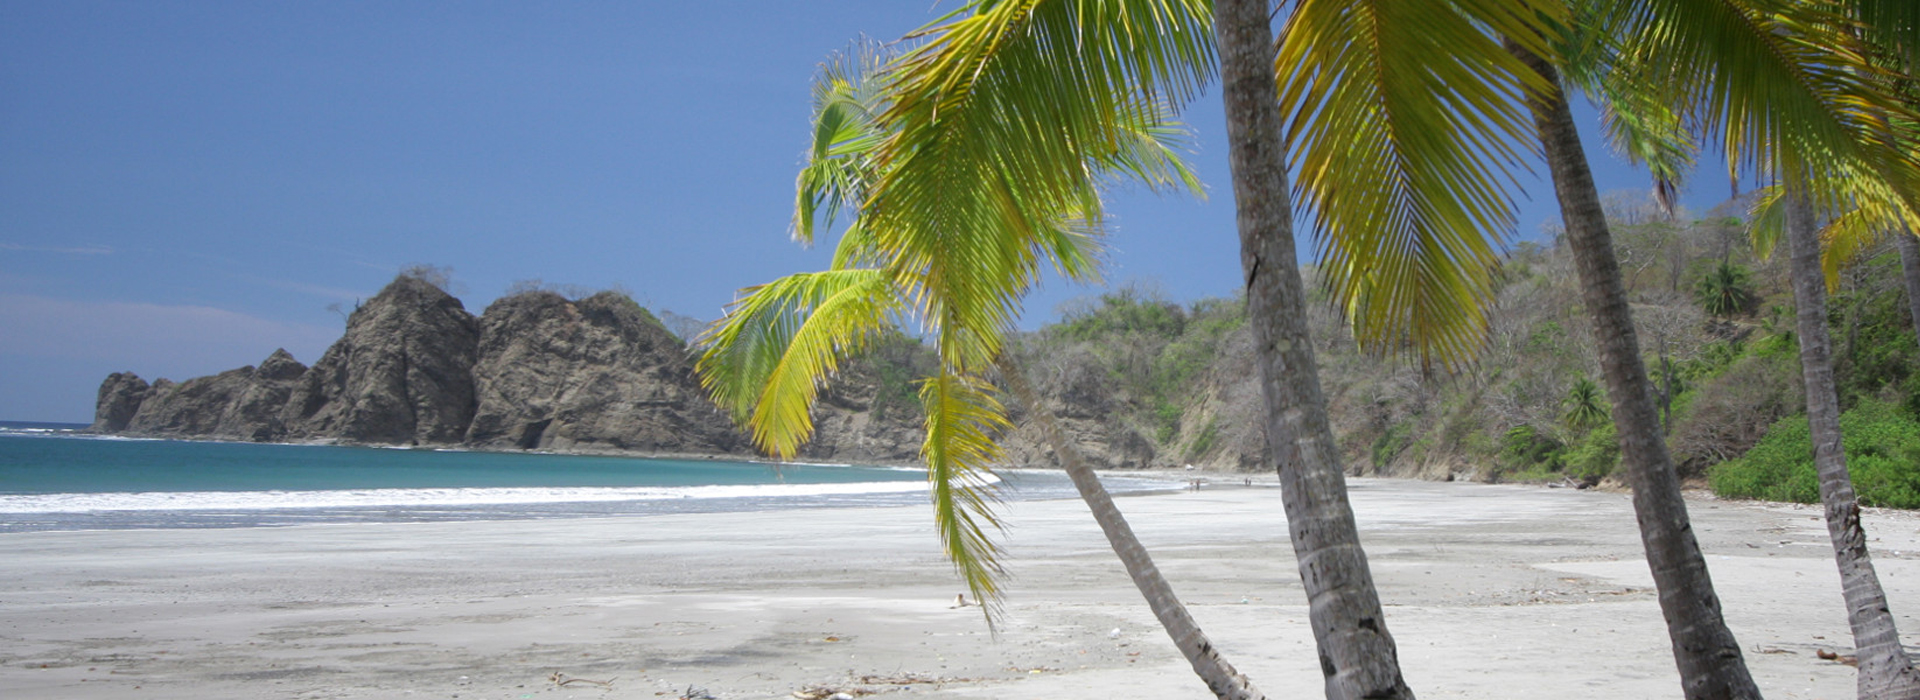 Treat yourself to an unforgettable holiday in Costa Rica